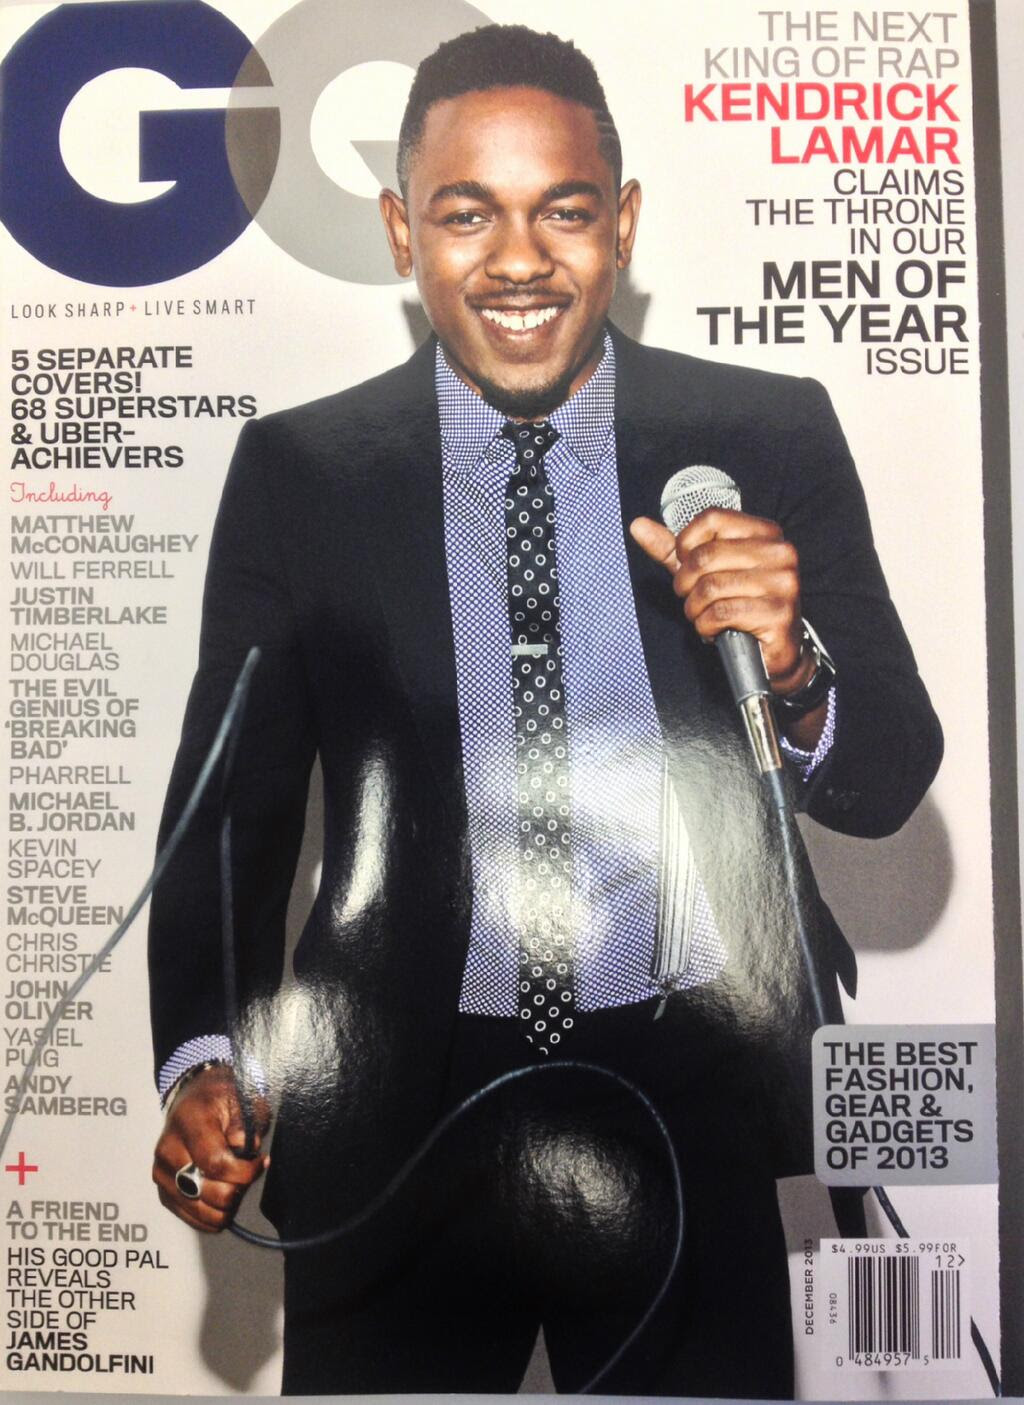 > Kendrick Lamar Covers GQ (Men Of The Year Issue) - Photo posted in The Hip-Hop Spot | Sign in and leave a comment below!